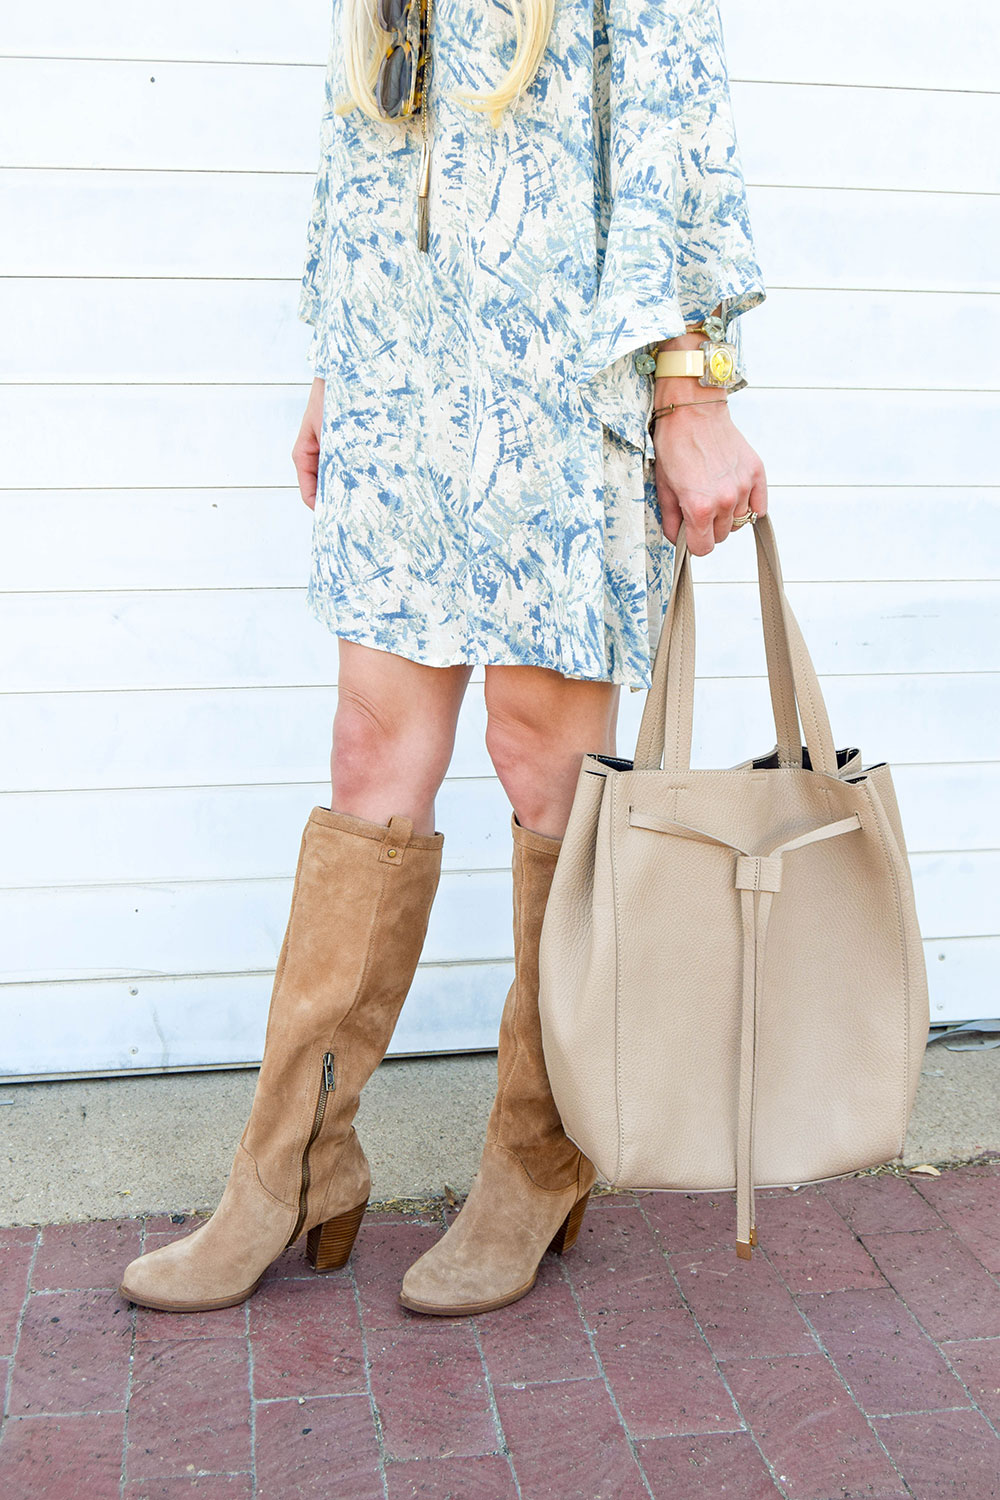 vandi-fair-dallas-fashion-blog-lauren-vandiver-southern-blogger-lush-whitney-bell-sleeve-woven-shift-dress-open-back-ugg-ava-tall-water-resistant-suede-boot-chestnut-1